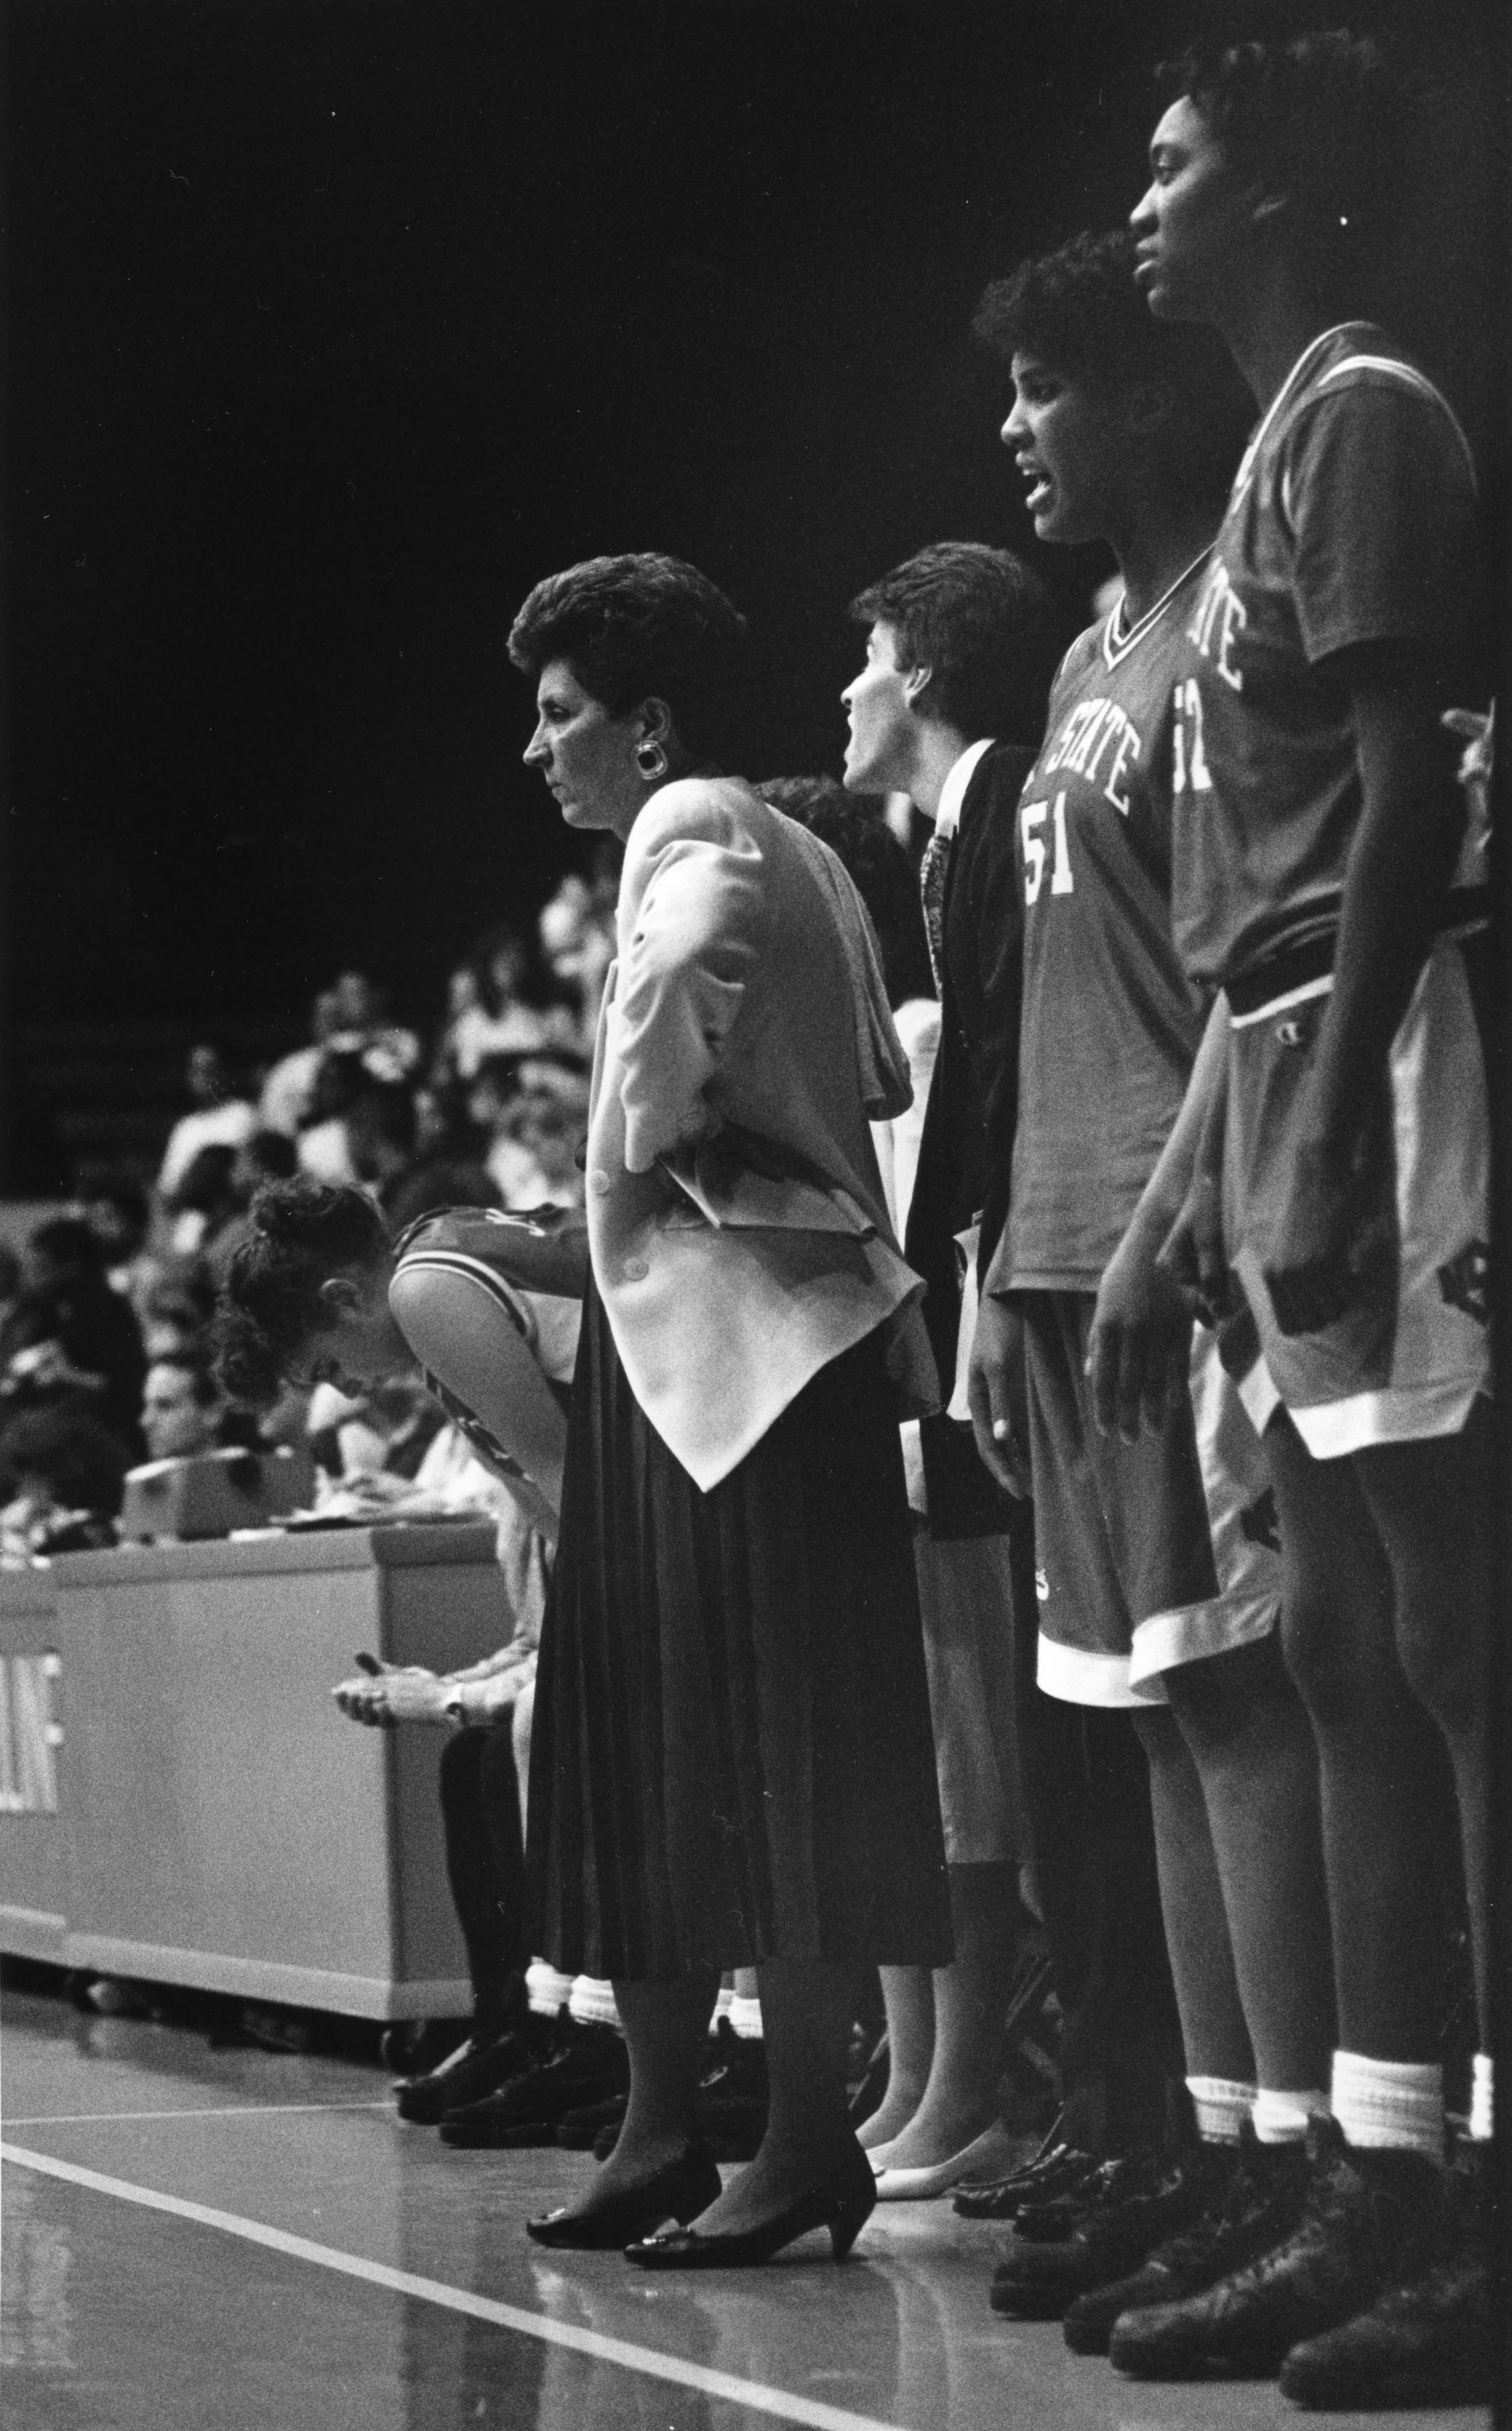 """Yow spent 34 years as the head coach at NC State, leading the Wolfpack to 20 NCAA Tournament appearances during that stretch. She also coached the 1988 Olympic team to a gold medal, and with 737 career wins, she is one of seven women's coaches in the Naismith Hall of Fame.Her impact off the court was no less significant, and through the cancer research fund that she established in 2007 her legacy continues to touch people outside the world of basketball.""""I feel like I had zero control over getting cancer, but I have 100 percent control over how I will respond to dealingwith cancer.I'm battling an opponent, the greatest opponent, the greatest foe that I've battled. The home court of the archrivalis nothing in comparison to this.Kay, don't wallow in self pity. You know you will drown. It's ok at moments to have some pity but swish your feetand get out. Just swish and get out.When life kicks you, let it kick you forward.Never let the urgent get in the way of the important."""" #playforkay"""